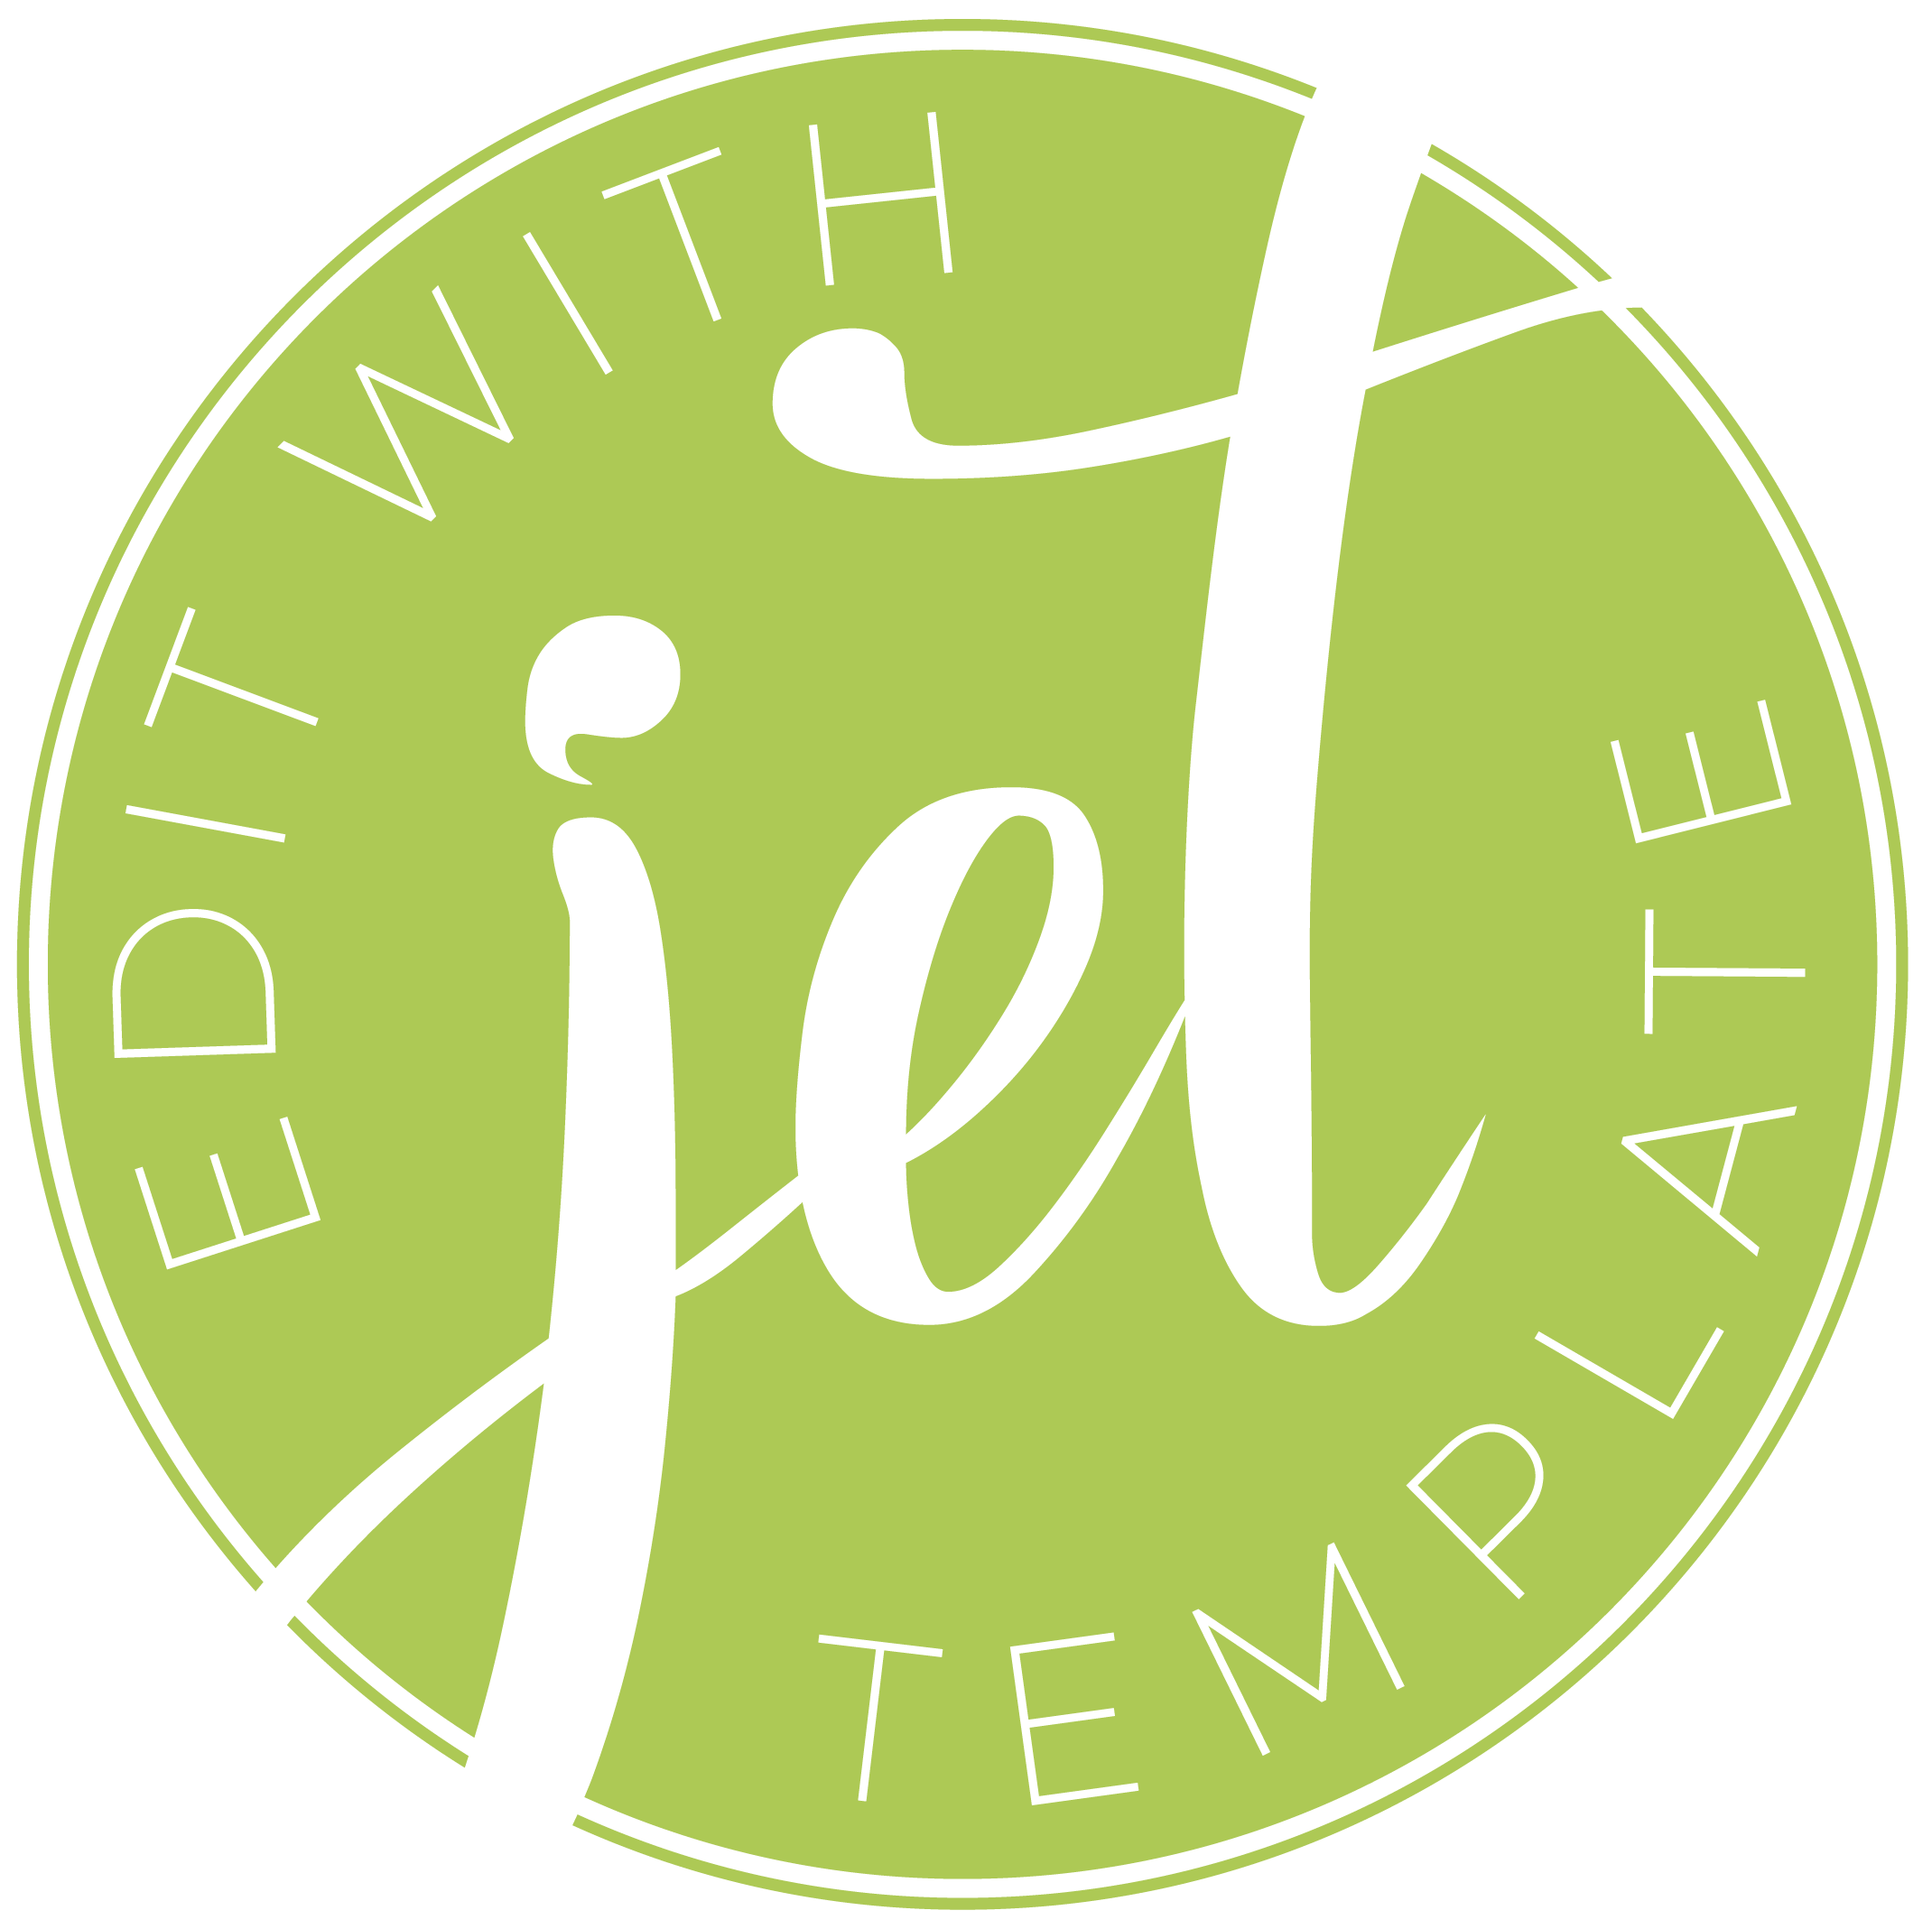 JetTemplate Help Center home page